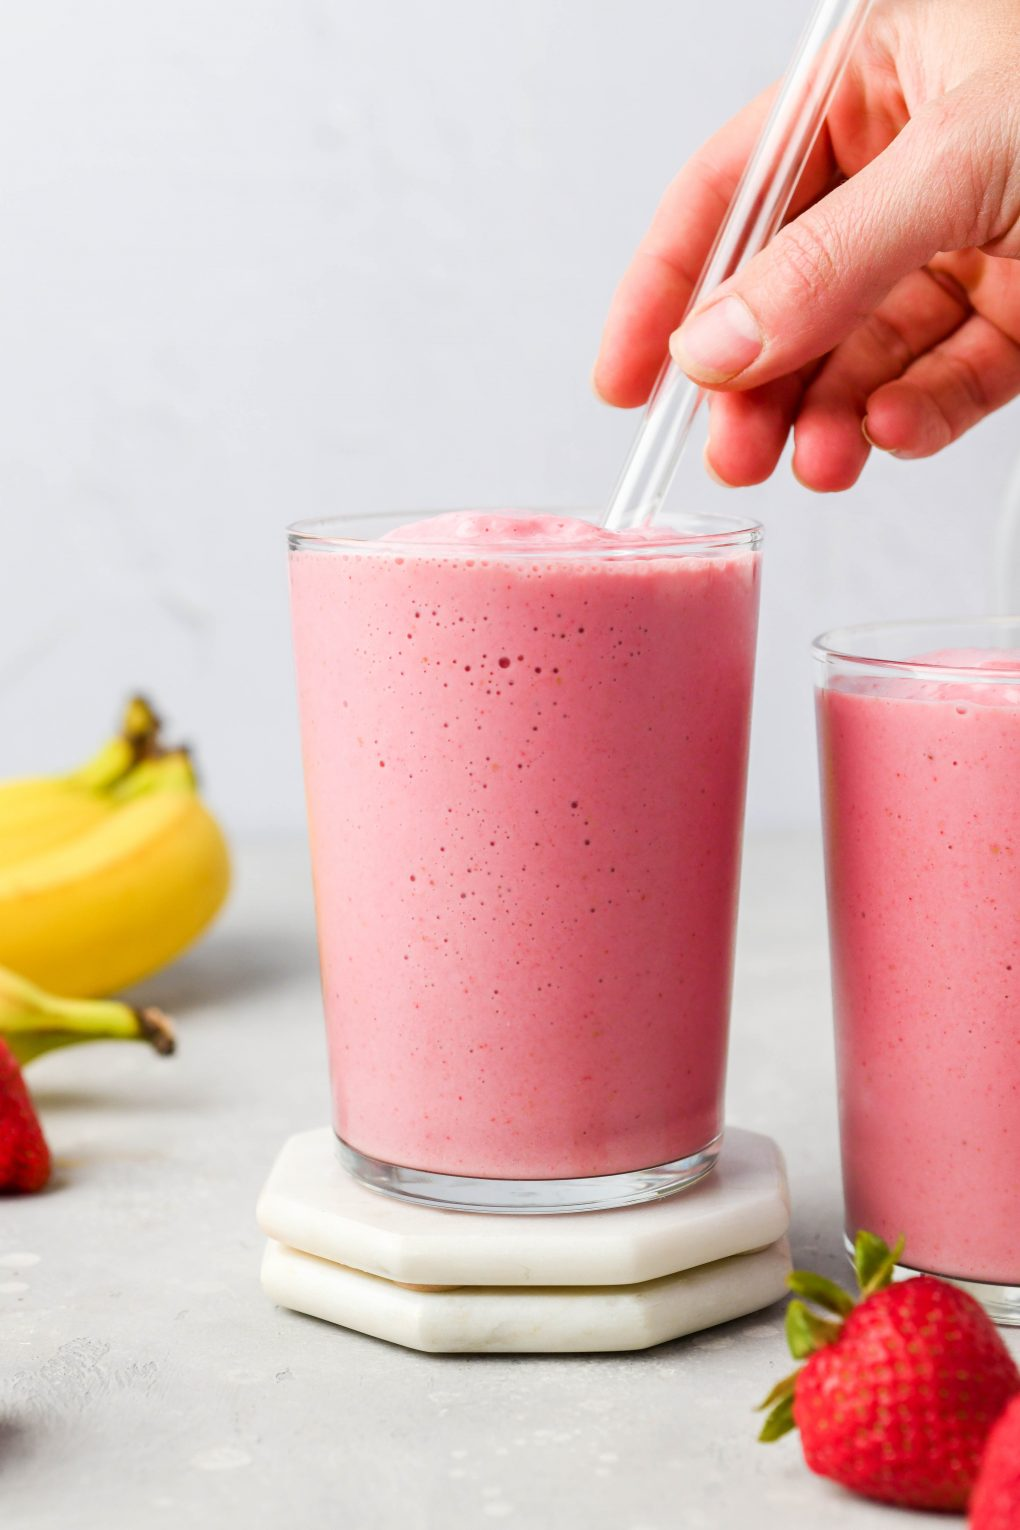 A hand reaching into the frame to place a glass straw into a glass filled with strawberry banana smoothie. On a light colored background next to some fresh strawberries and a small bunch of bananas.